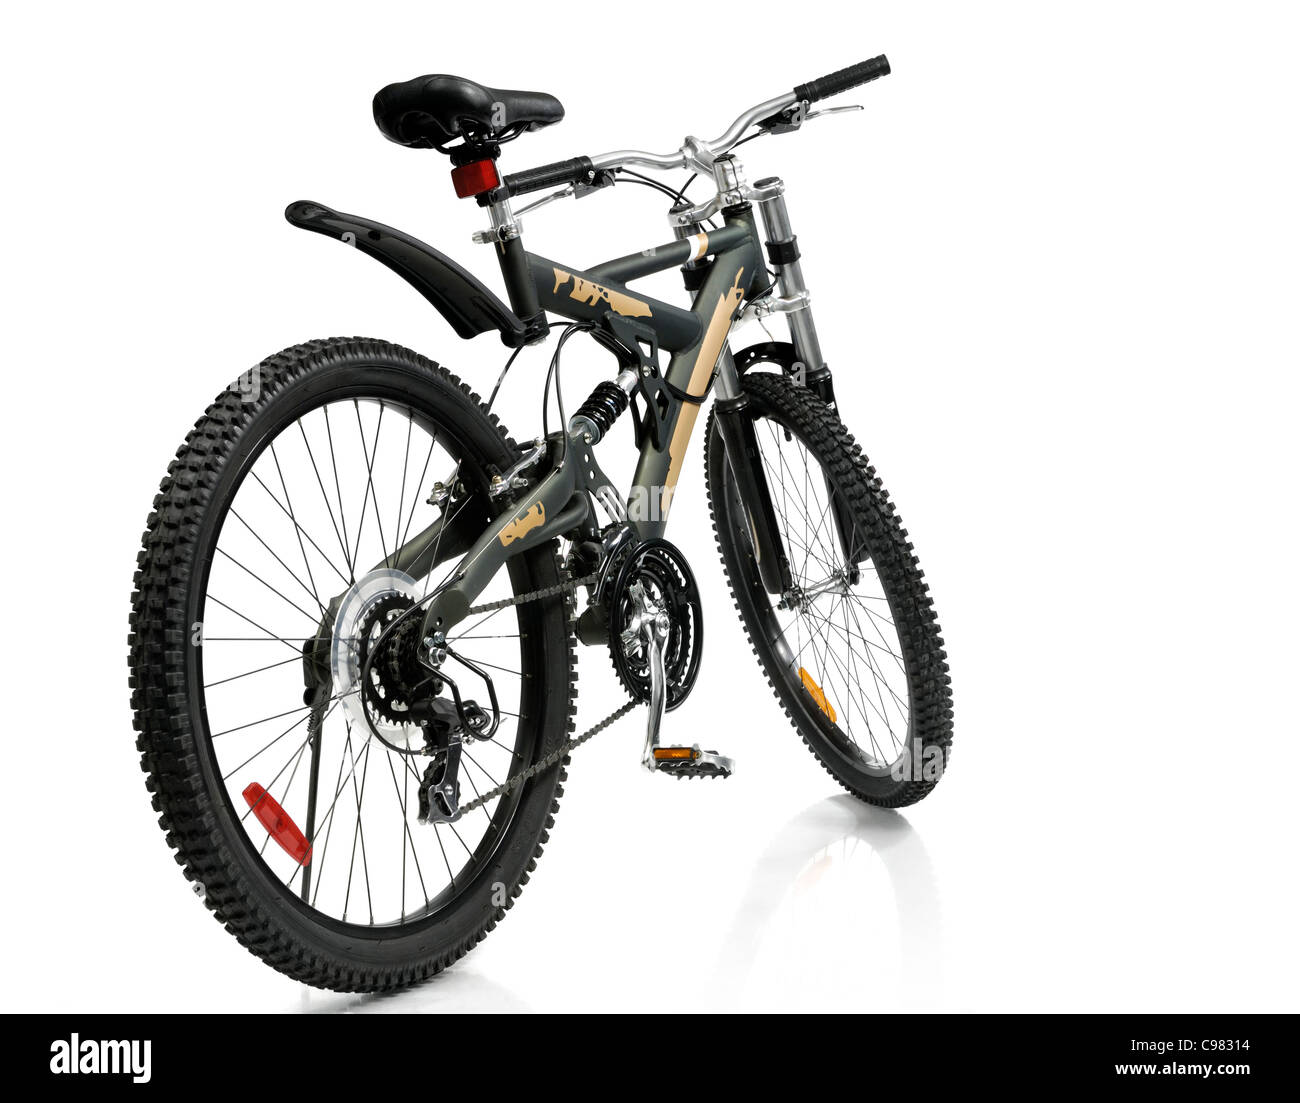 MTB sport 21-speed dual suspension mountain bicycle Isolated on white background - Stock Image